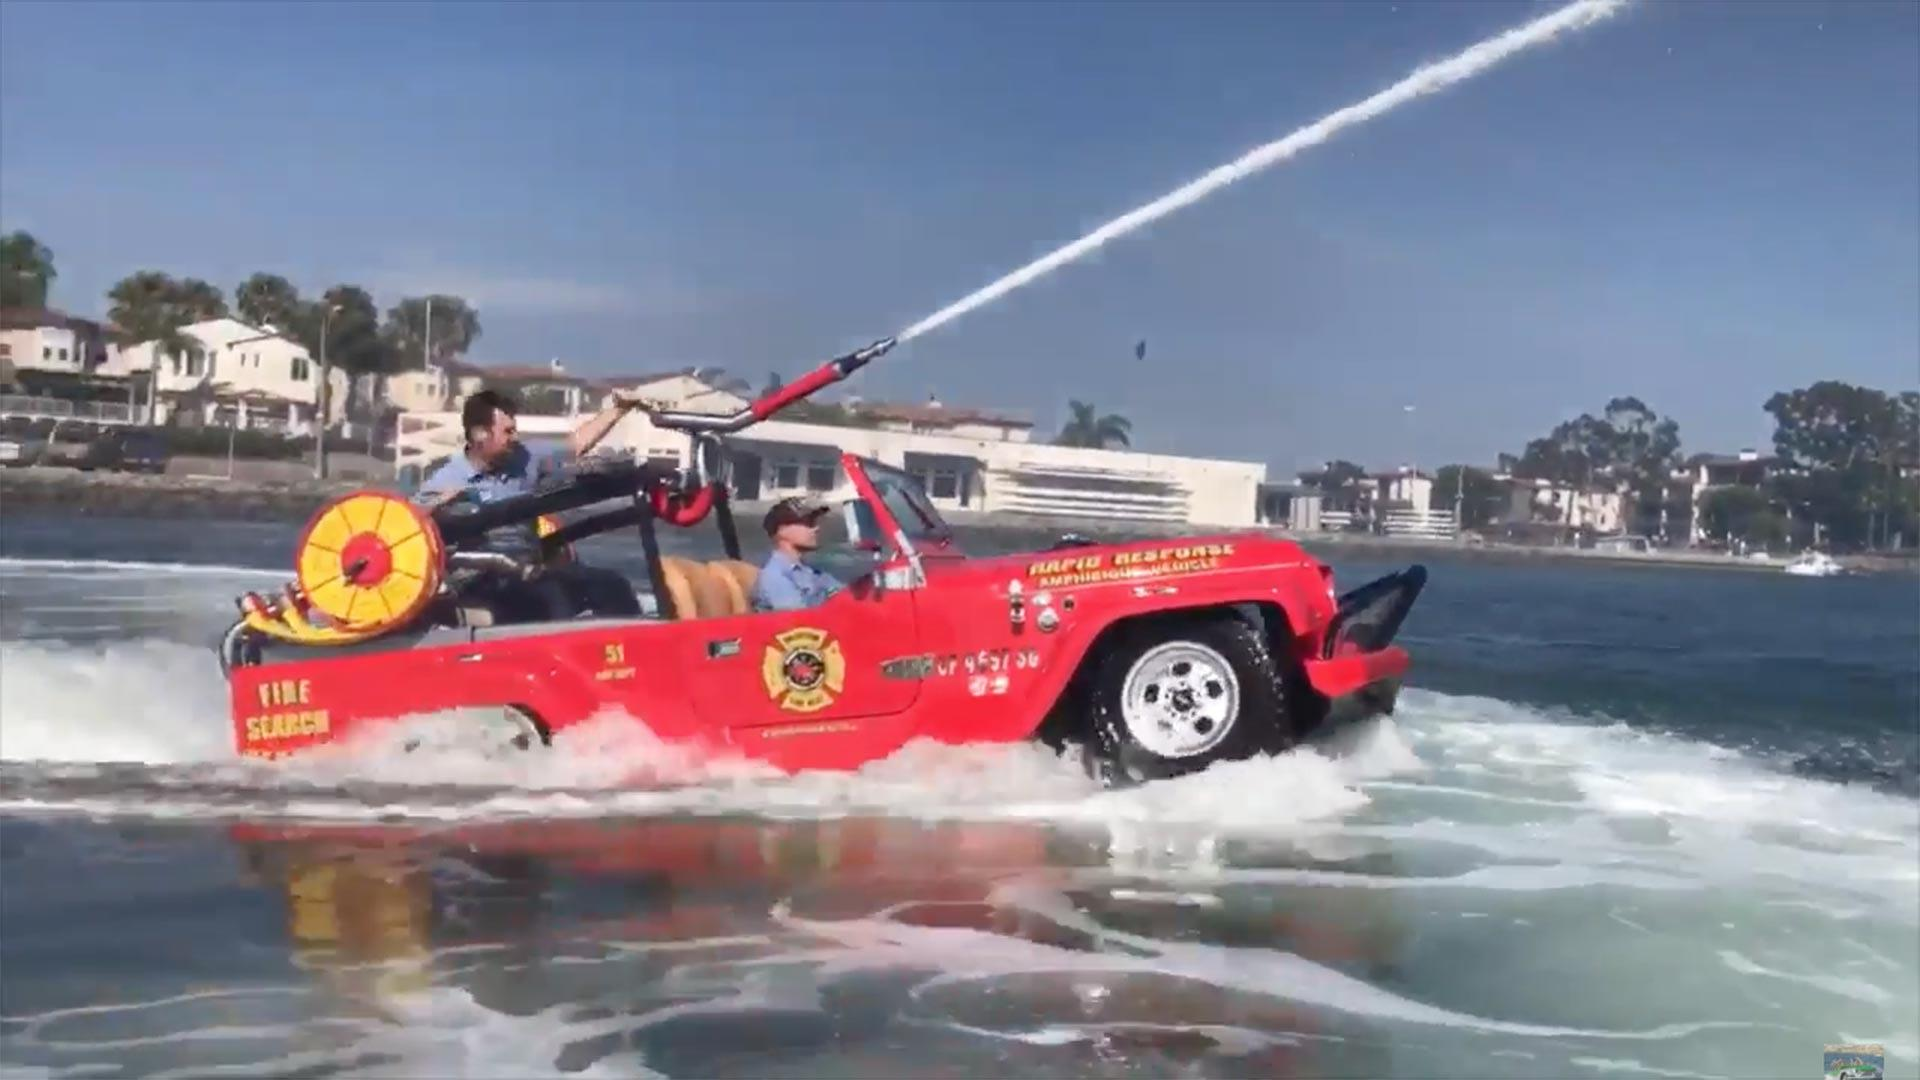 Cannon-Equipped Amphibious WaterCar Is Cool Way To Put Out Fire